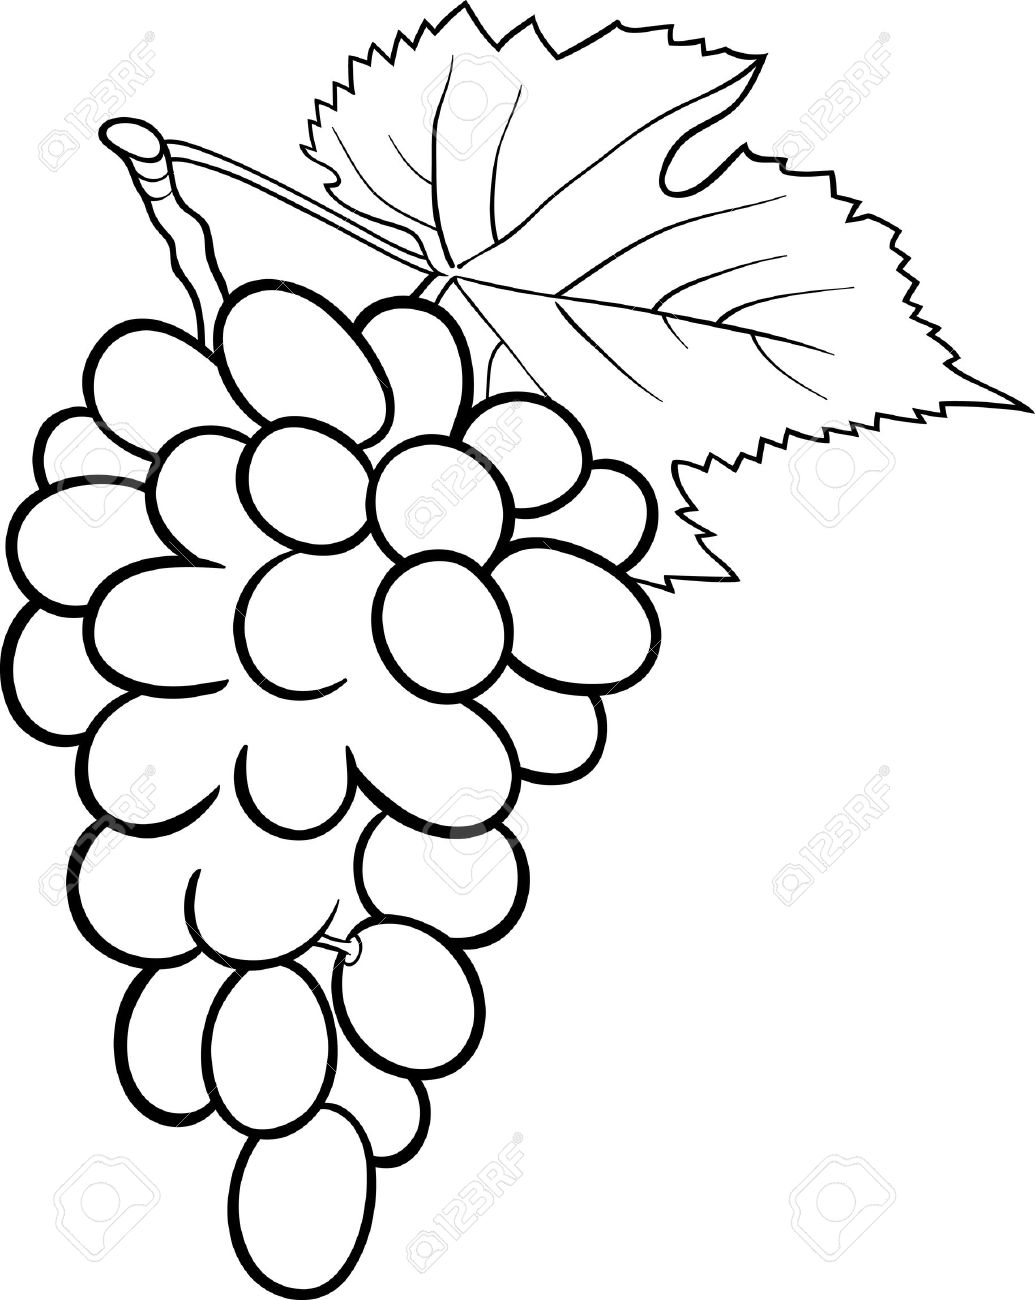 1035x1300 Black And White Cartoon Illustration Of Bunch Of Grapes